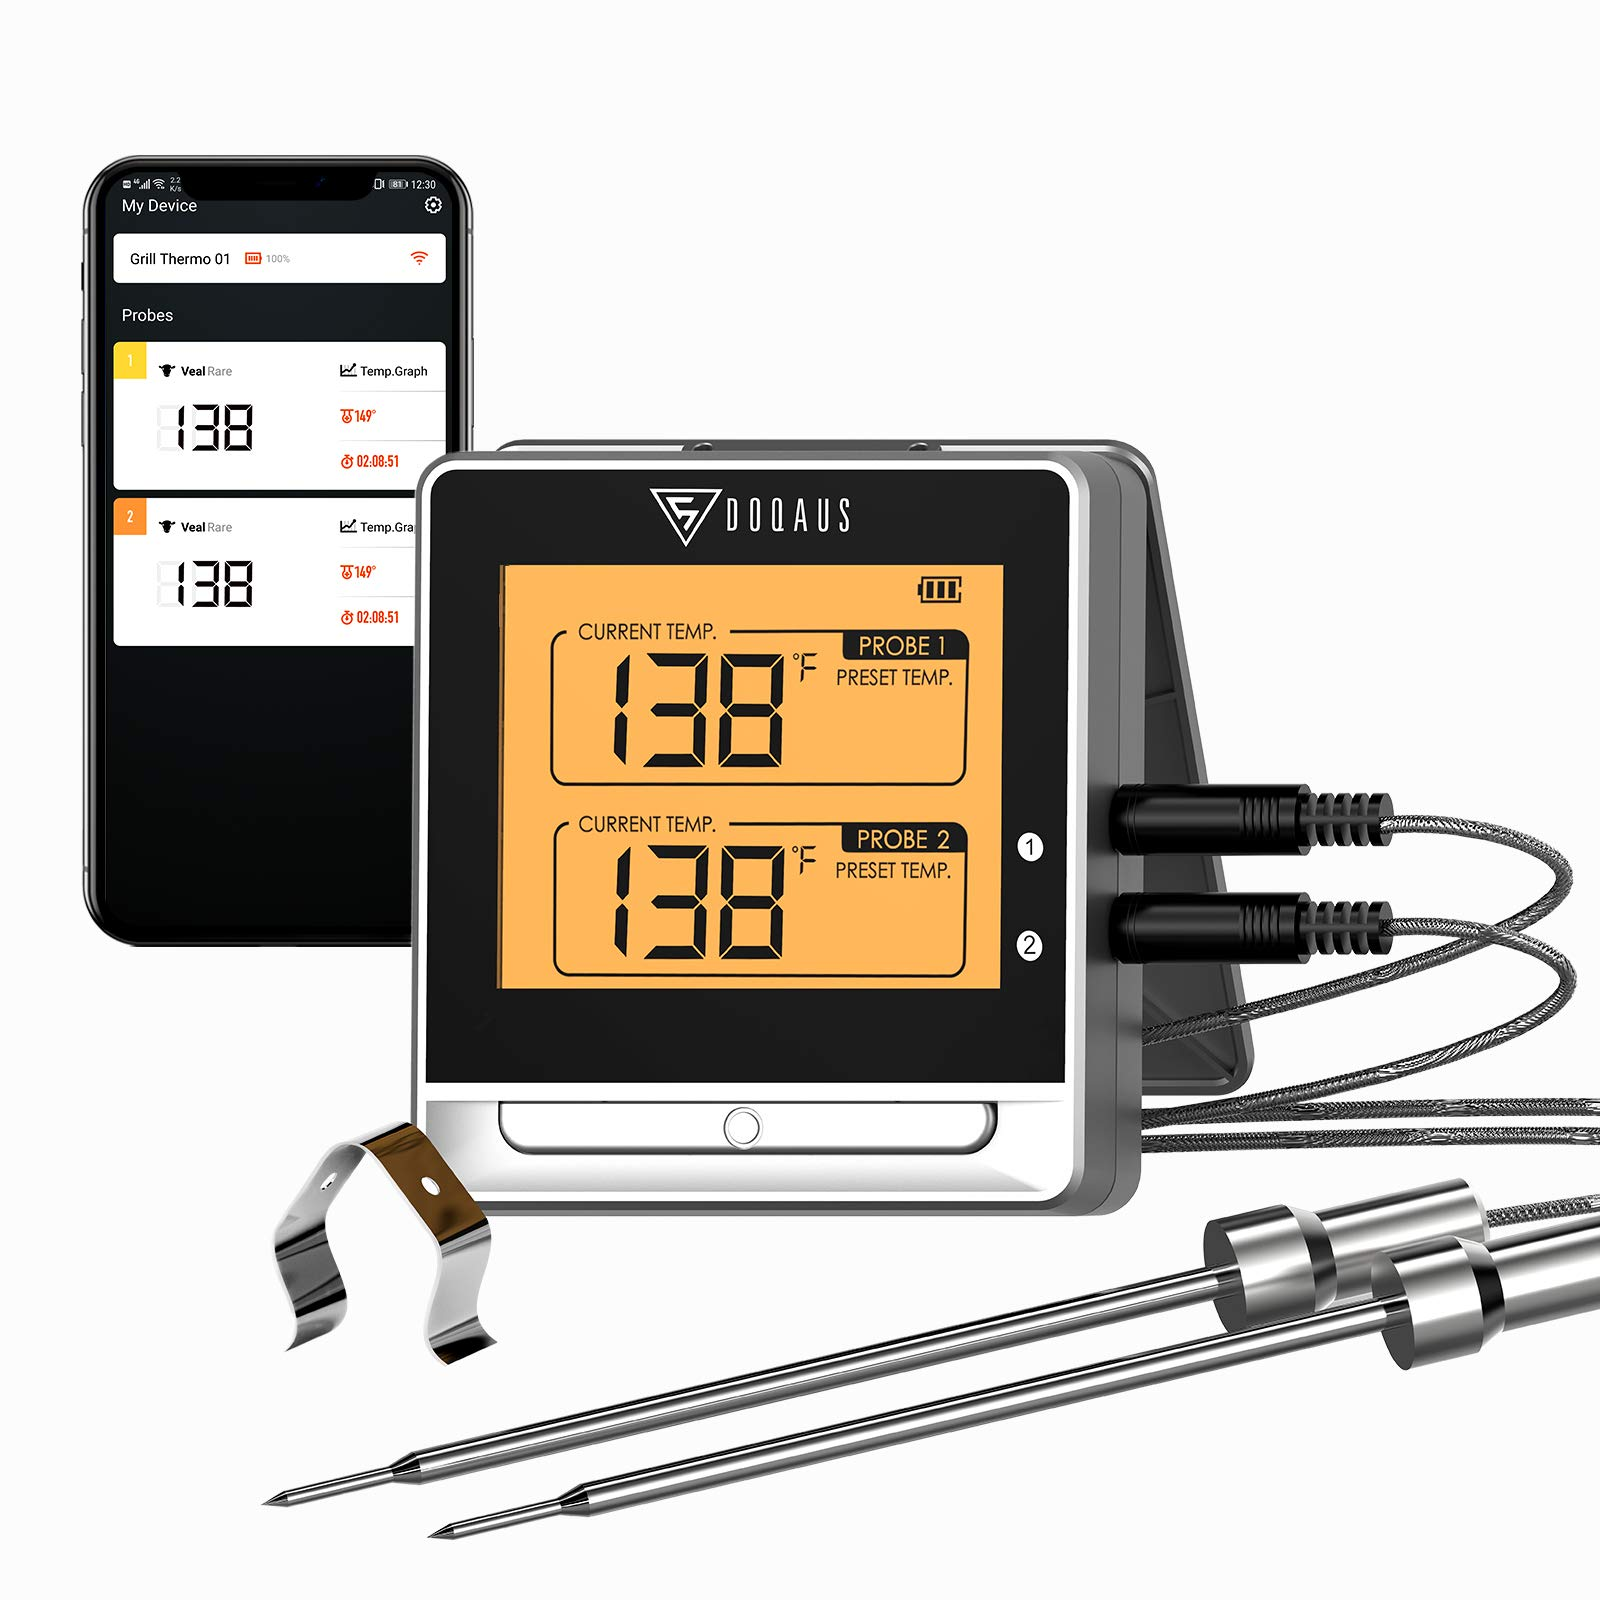 DOQAUS Bluetooth Wireless Meat Thermometer for Grilling, Digital Food Thermometer with 2 Probes, 197ft Remote Cooking Thermometer with Smart Kitchen Timer and Backlight for Smoker, Oven, Grill, BBQ